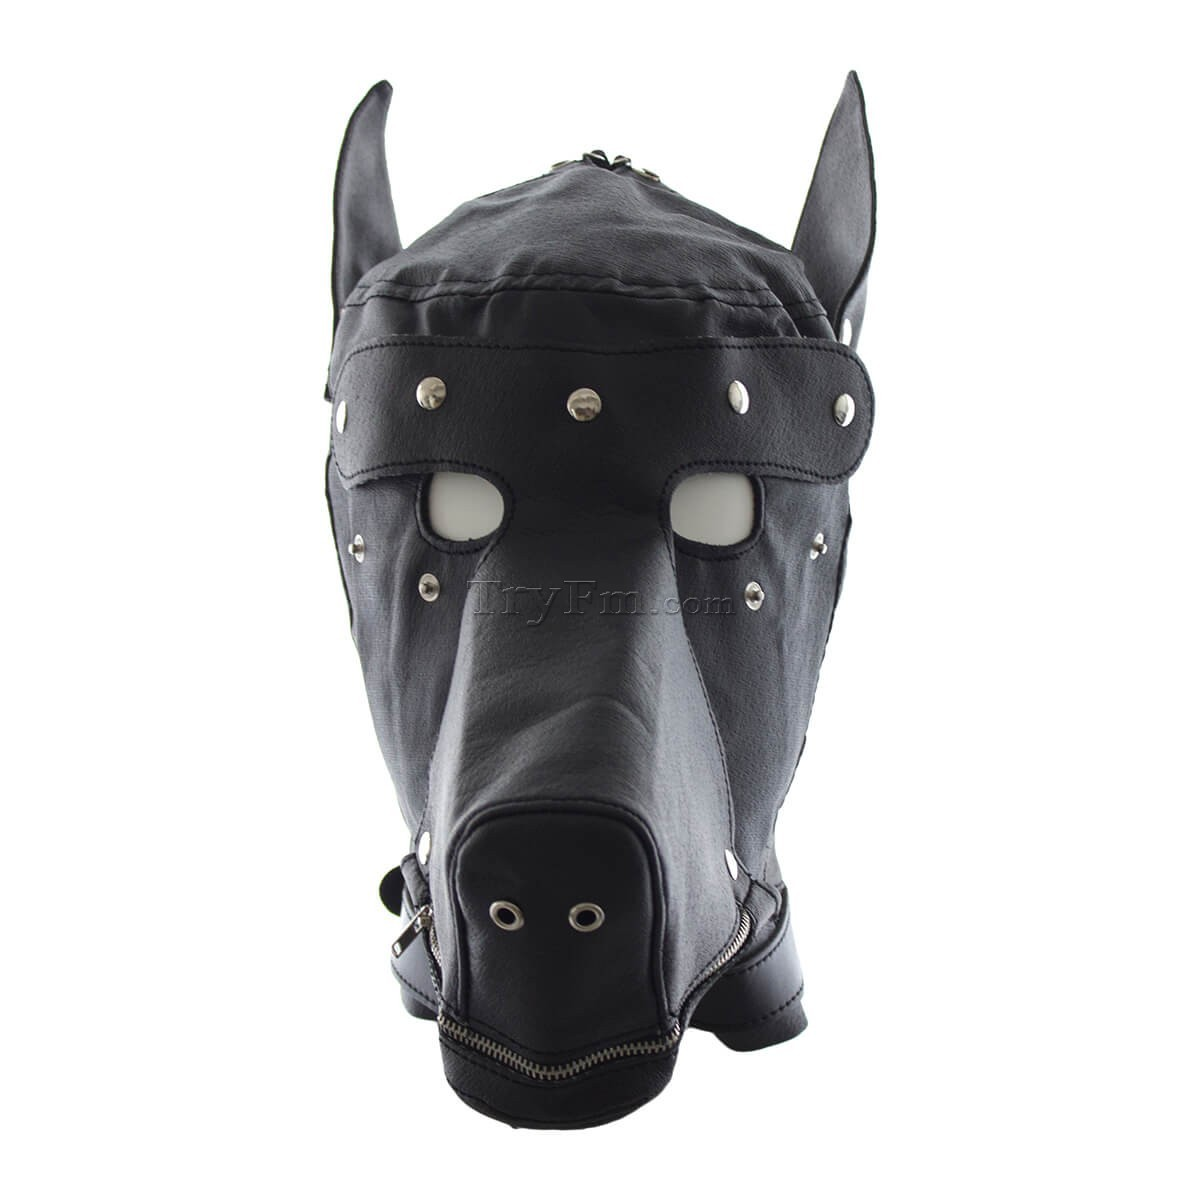 15-BDSM-Hood-with-Removable-Muzzle7.jpg